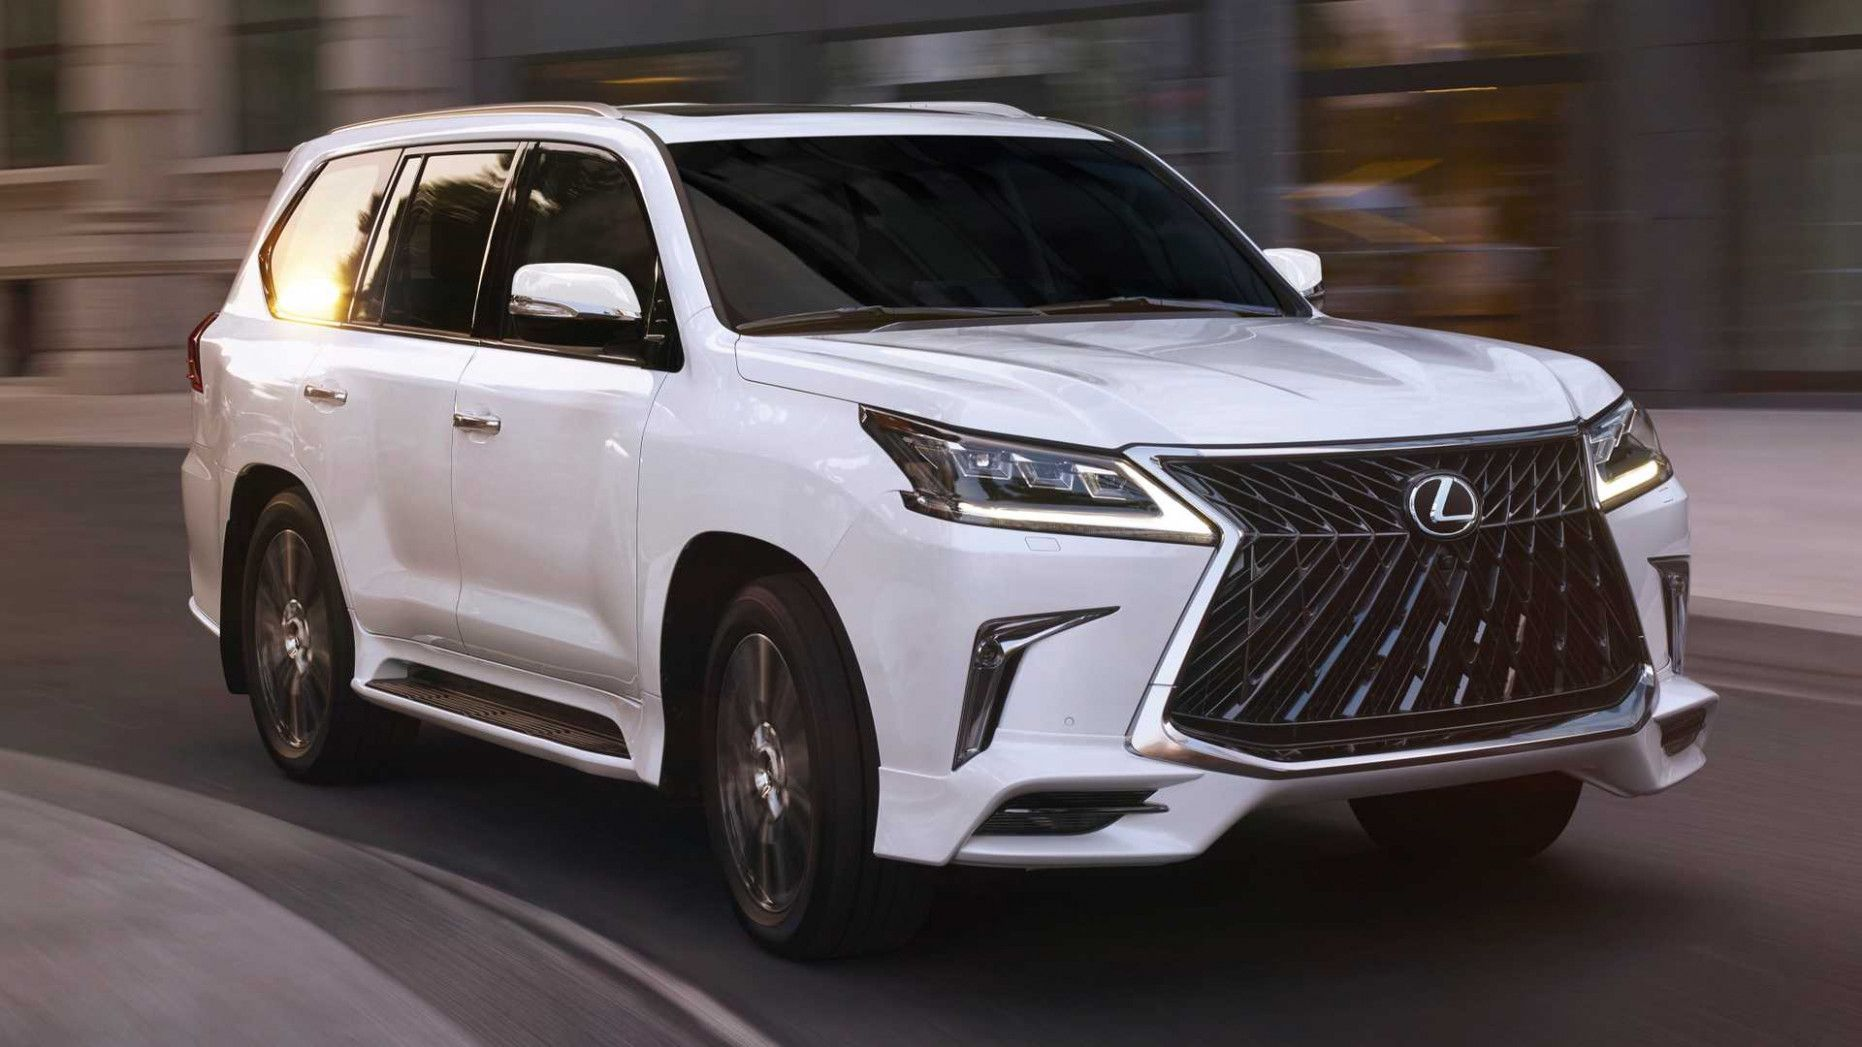 Lexus Lx 570 Redesign 2020 New Model And Performance 2020 Car Reviews Suv